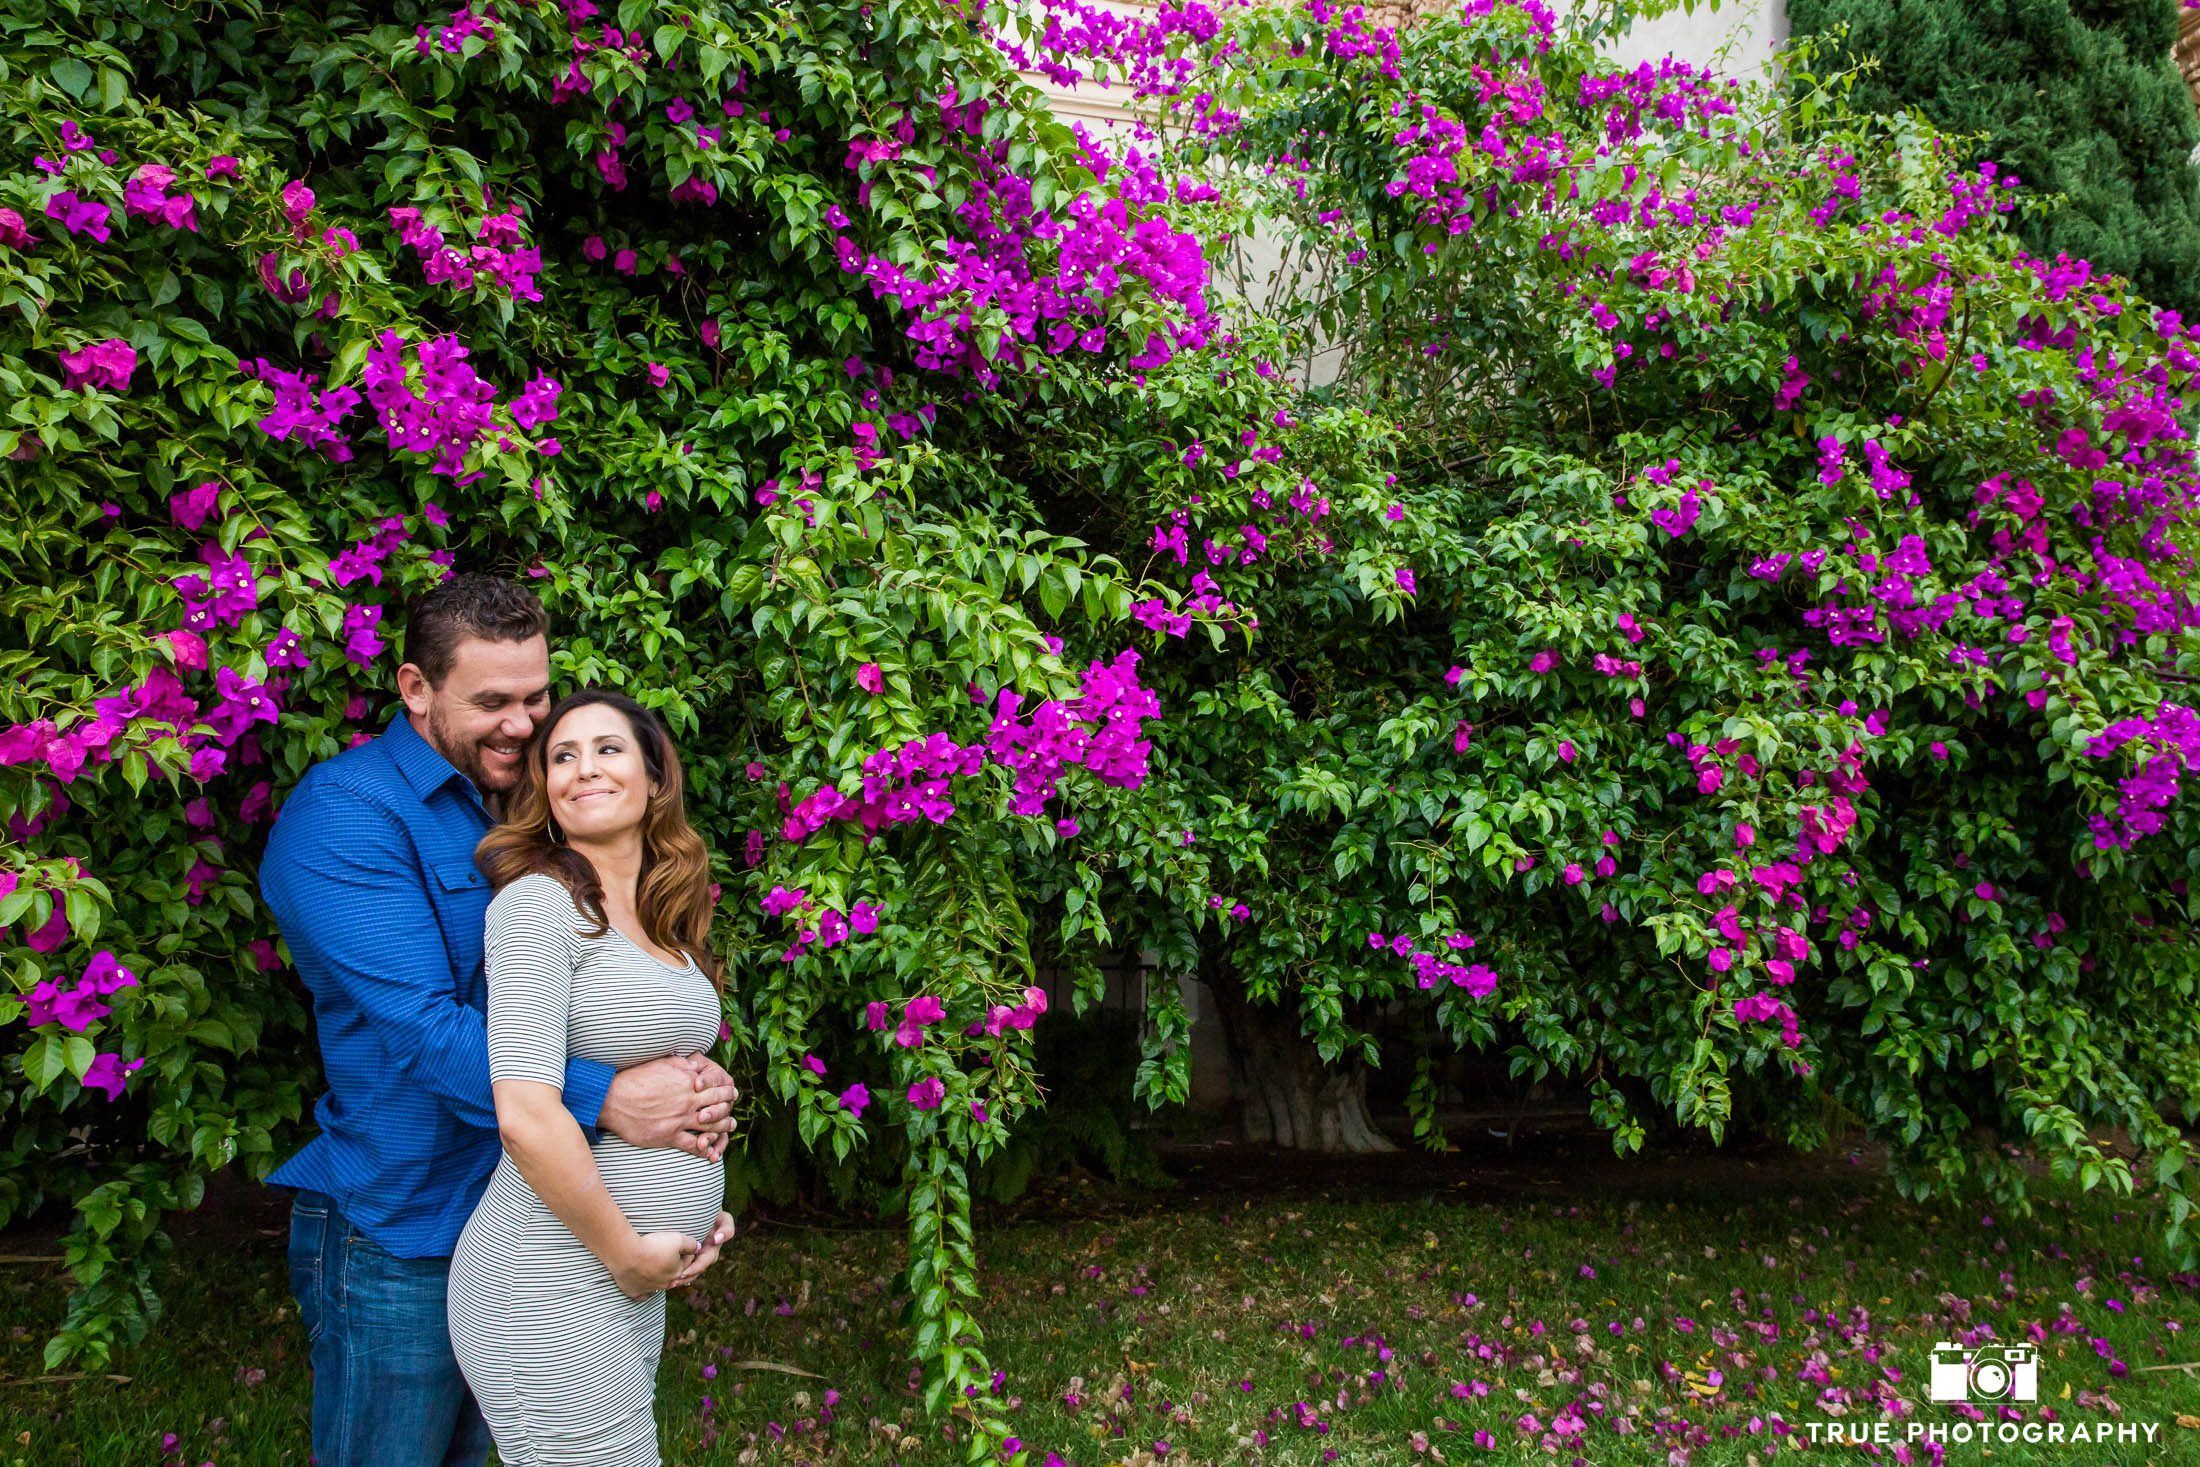 Husband and Wife embrace and laugh during cute maternity session